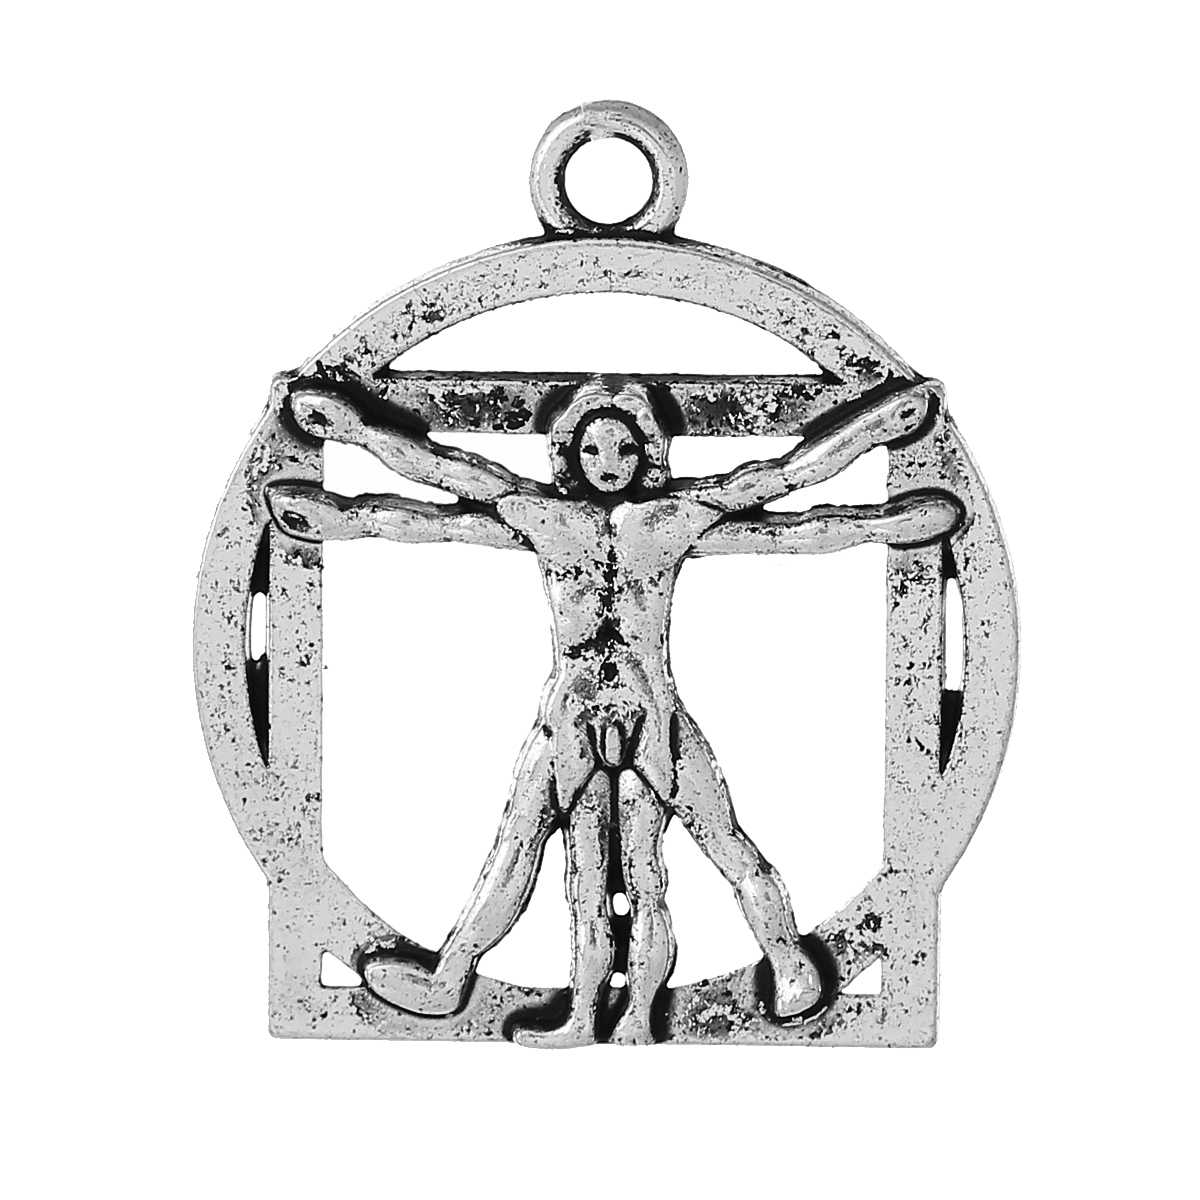 "DoreenBeads Zinc metal alloy Charm Pendants Round Antique Silver Person Carved Hollow 25mm(1"") x 22mm( 7/8""),1 Piece 2017 new"